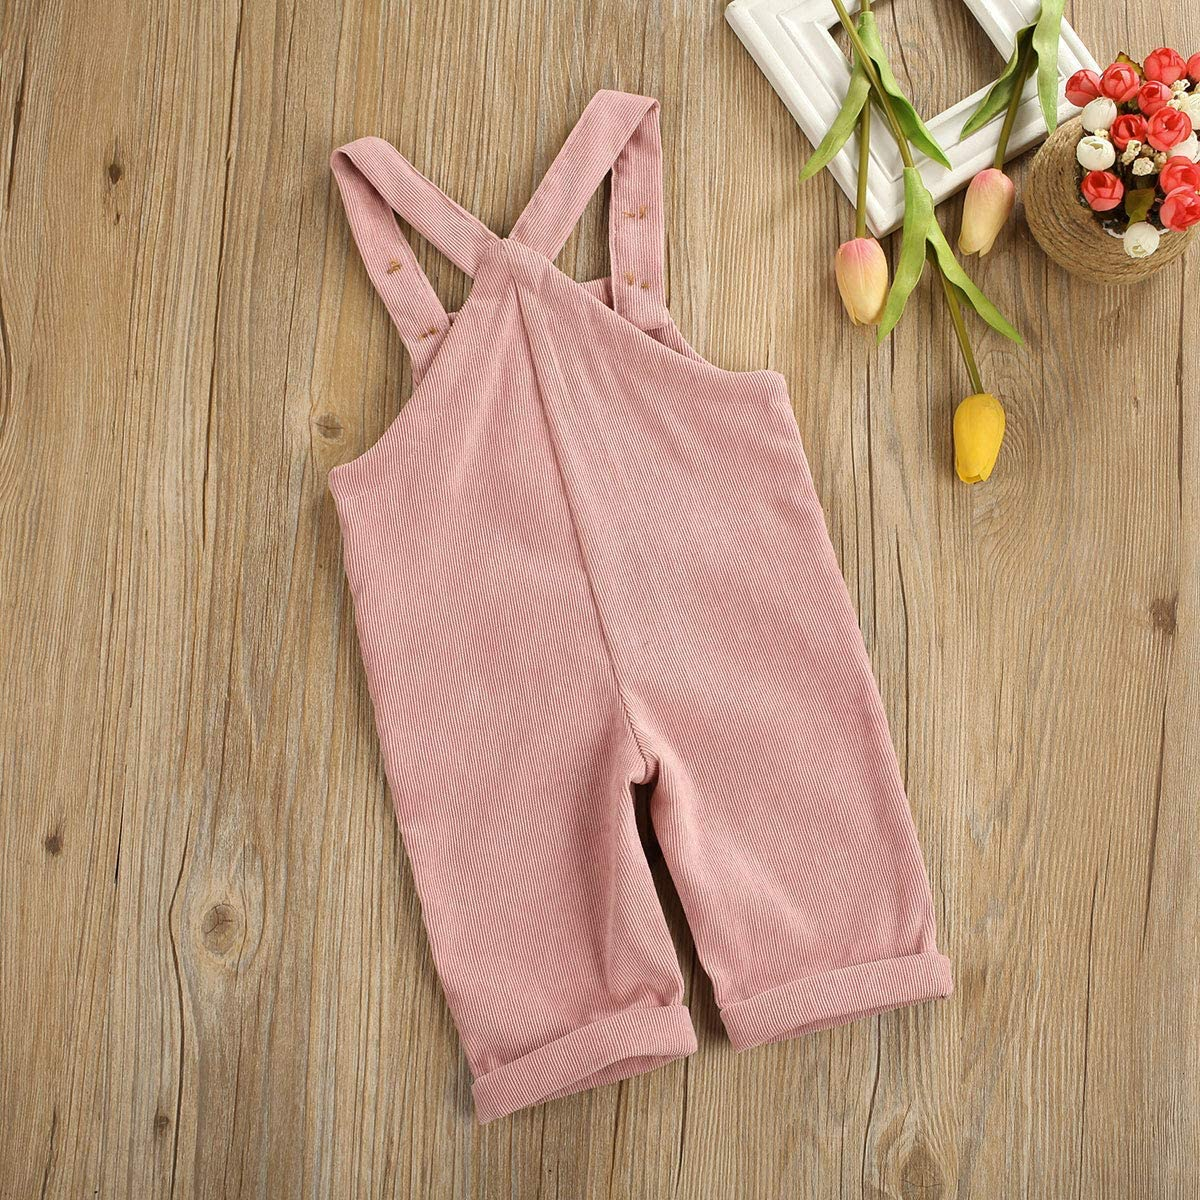 Kuriozud Toddler Baby Girl Boy Corduroy Overall Solid Bib Pants Suspender Trousers with 2 Pocket Bottom Clothes